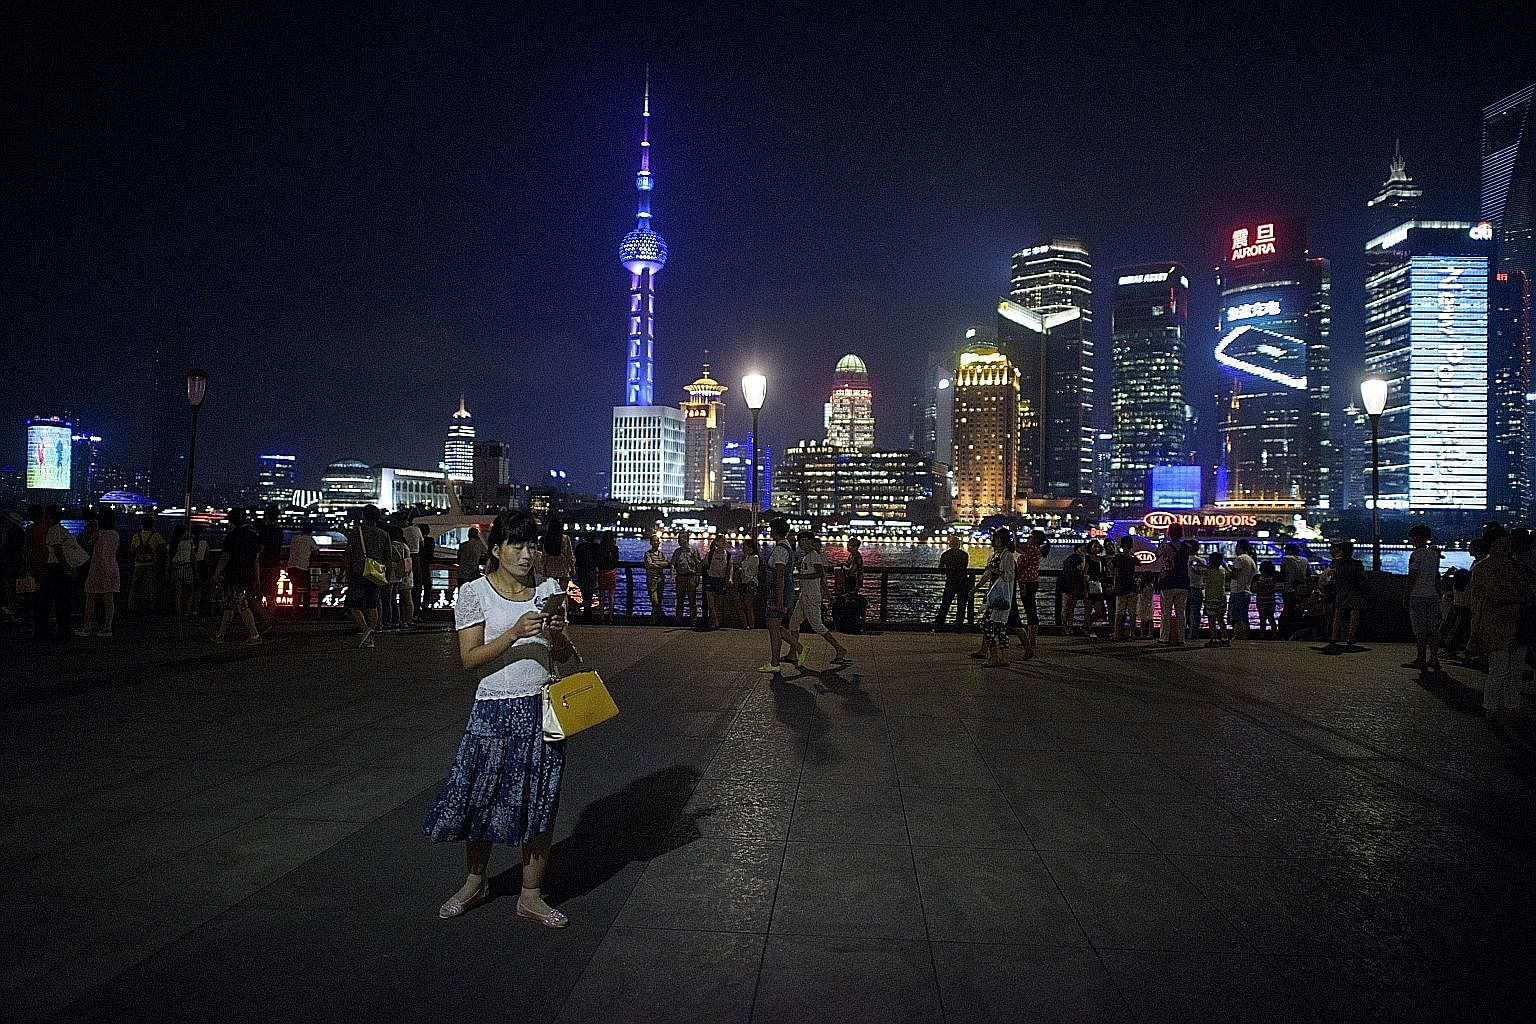 Shanghai's historic Bund. At the inaugural World Huaqiao Huaren Businessmen and Industrialists Conference in July, Chinese Premier Li Keqiang appealed to overseas Chinese businessmen to put China first.